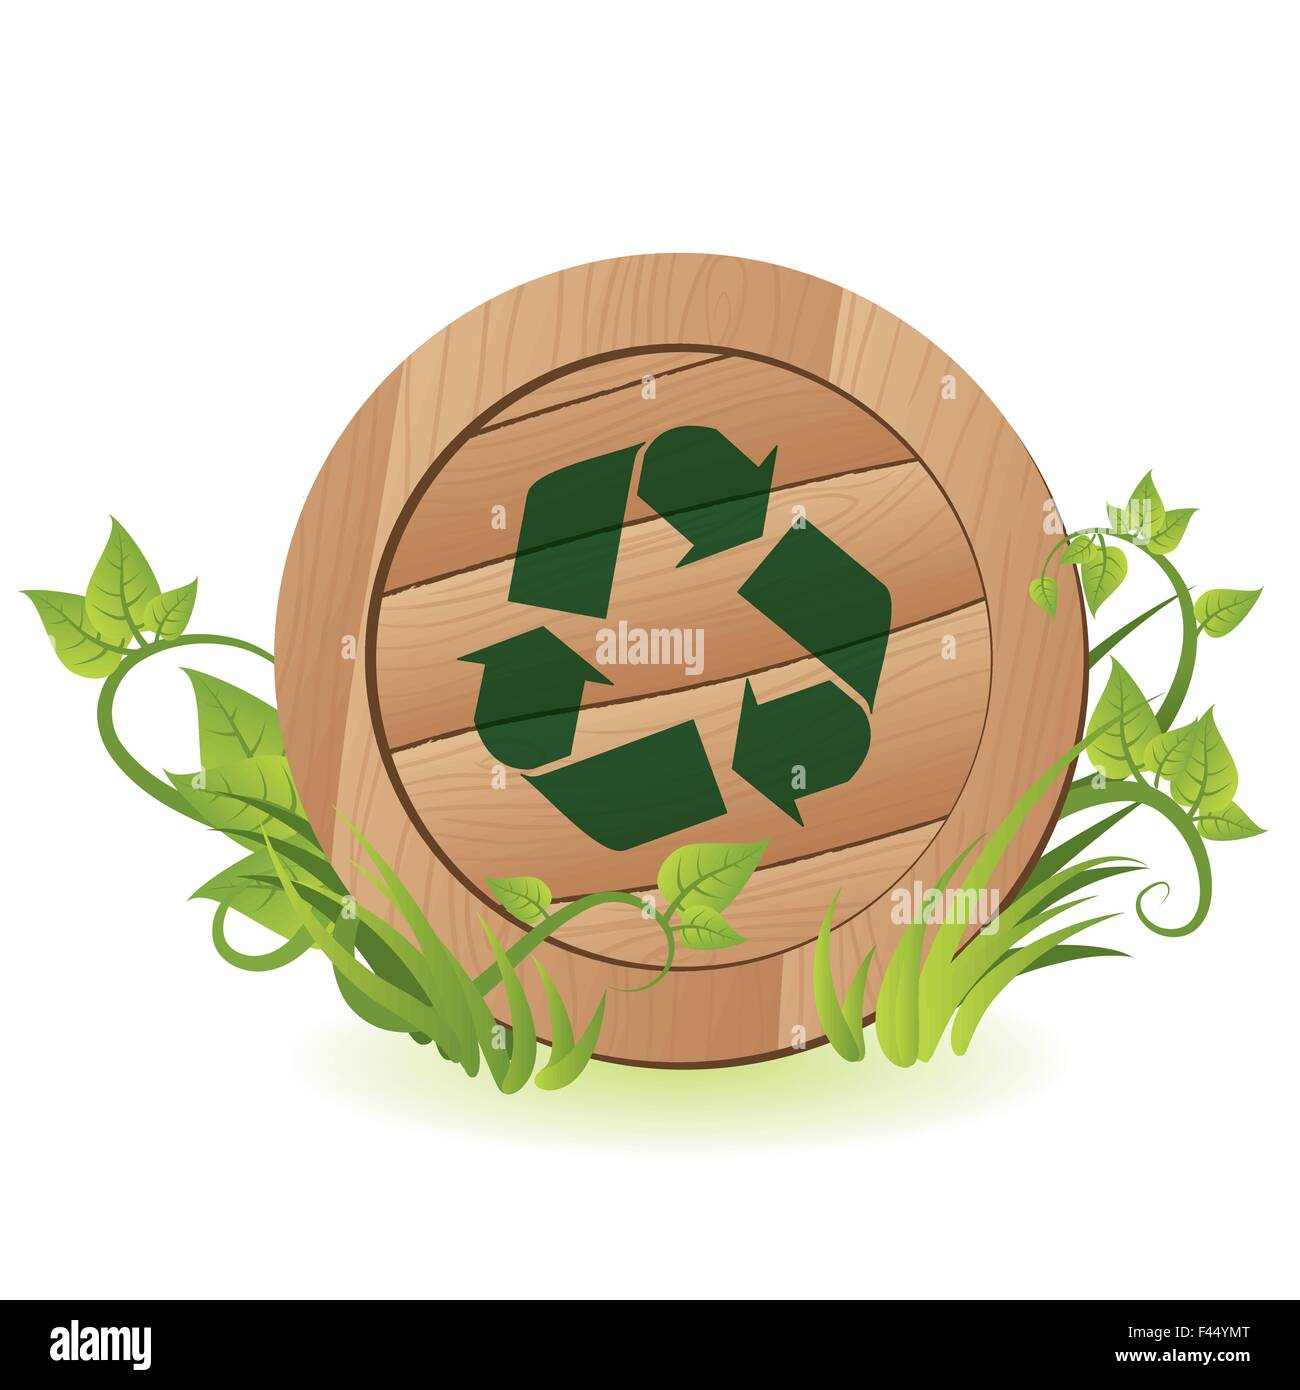 Recycle sign - Stock Image